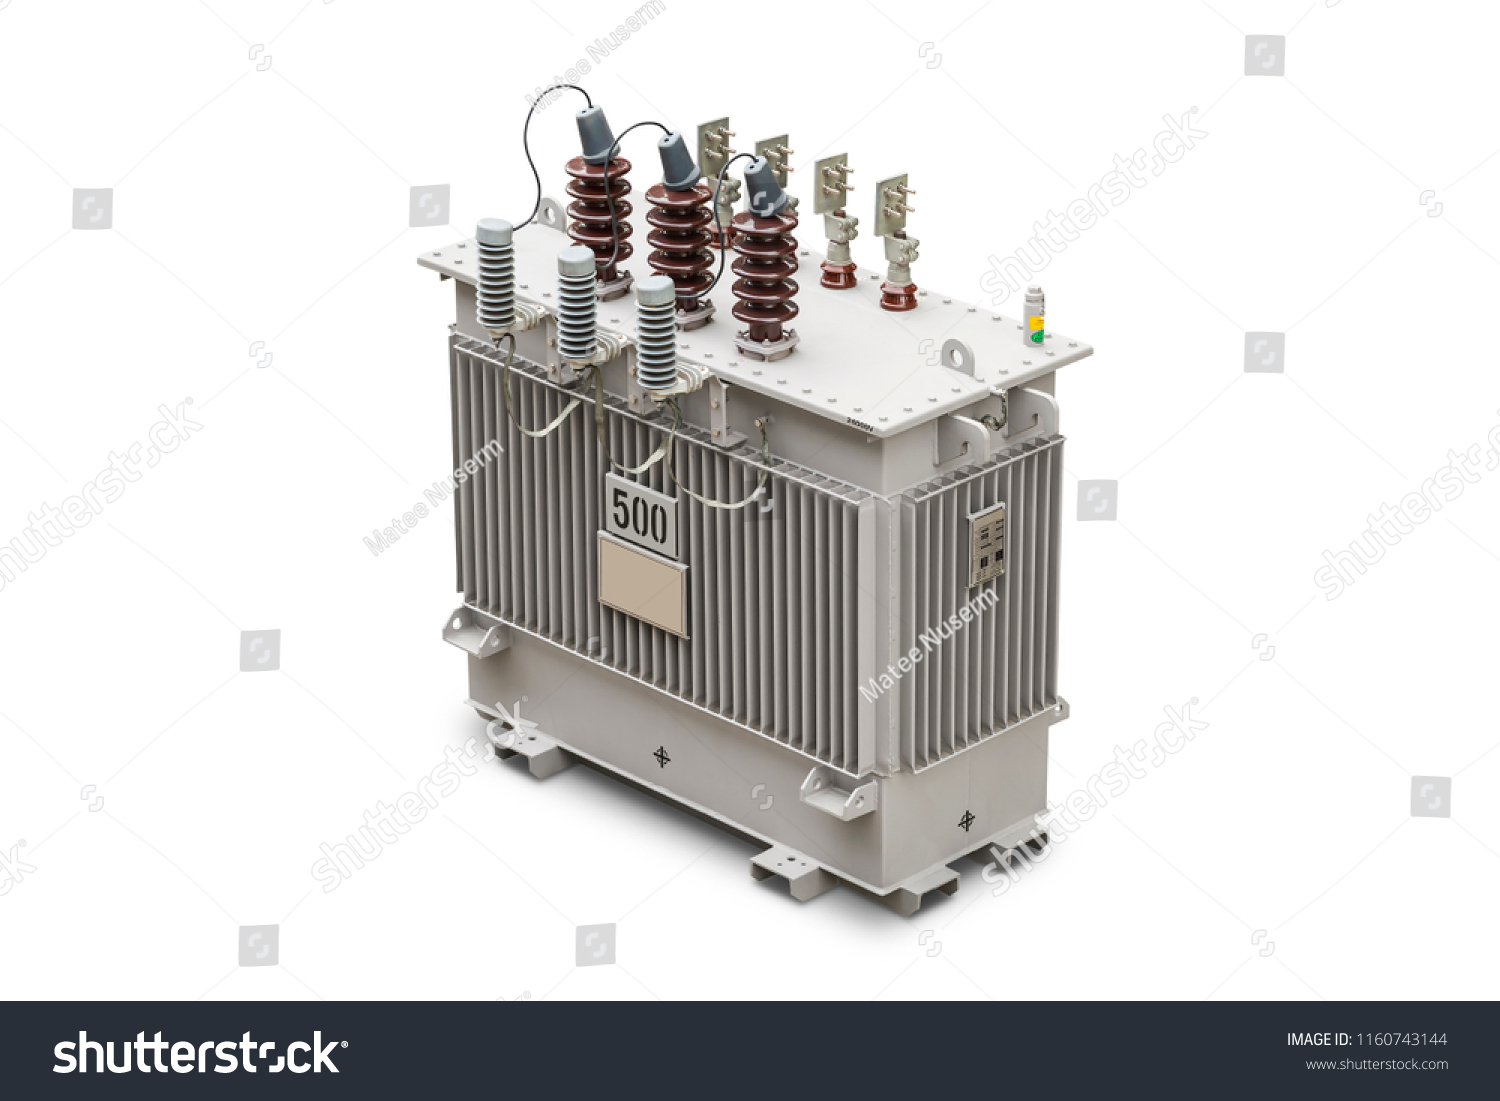 Three Phase 500 Kva Hermetic Sealed Stock Photo (Edit Now